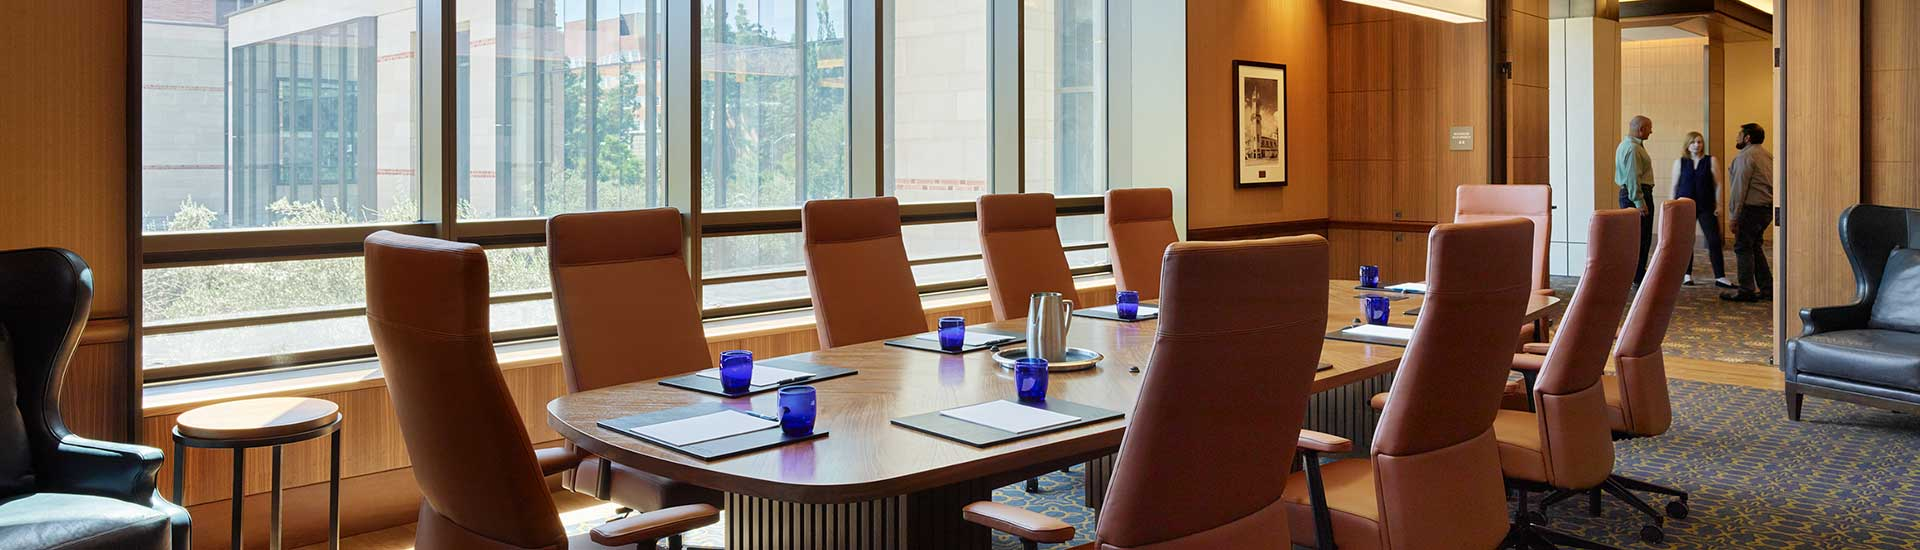 UCLA Conference Room at luskin conference center